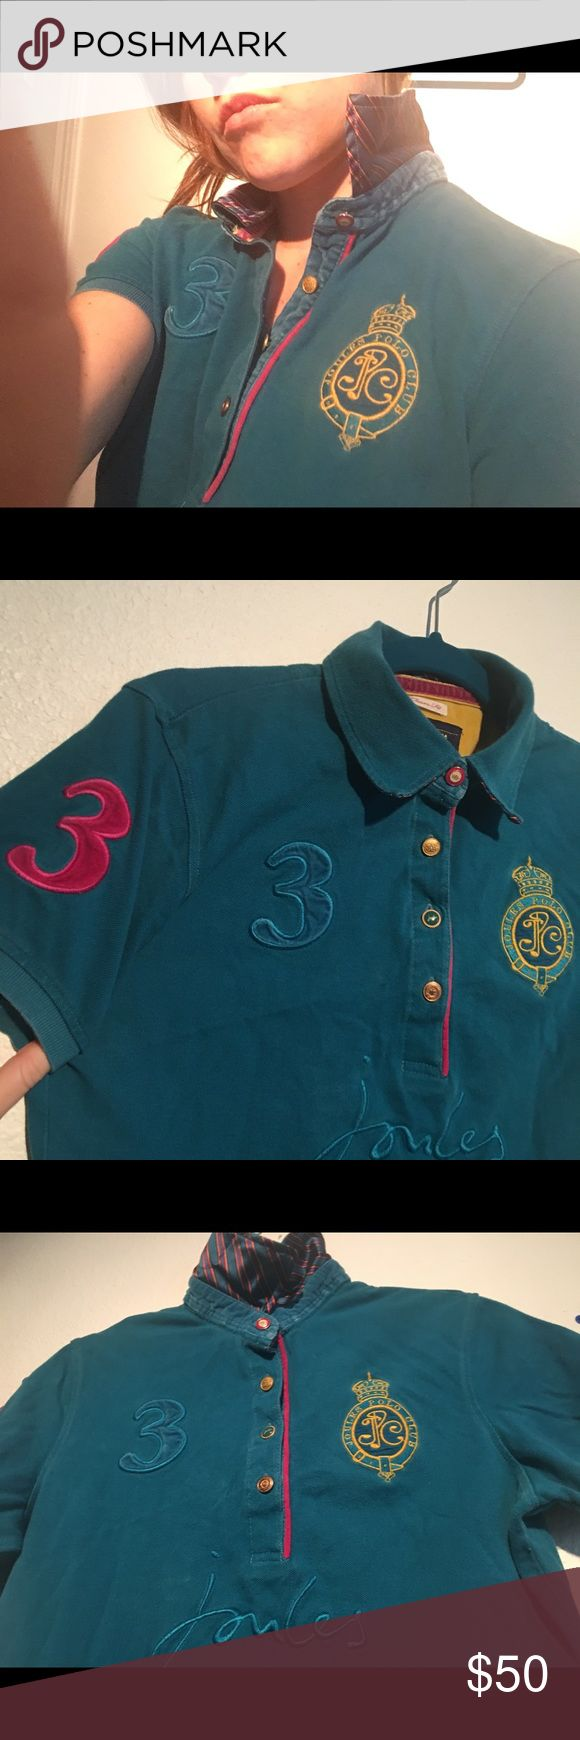 Joules polo- limited edition Joules polo shirt purchased in London. Fabulous details on buttons, stitching, silk stripe print under color. Beautiful blue color. Perfect condition Joules Tops